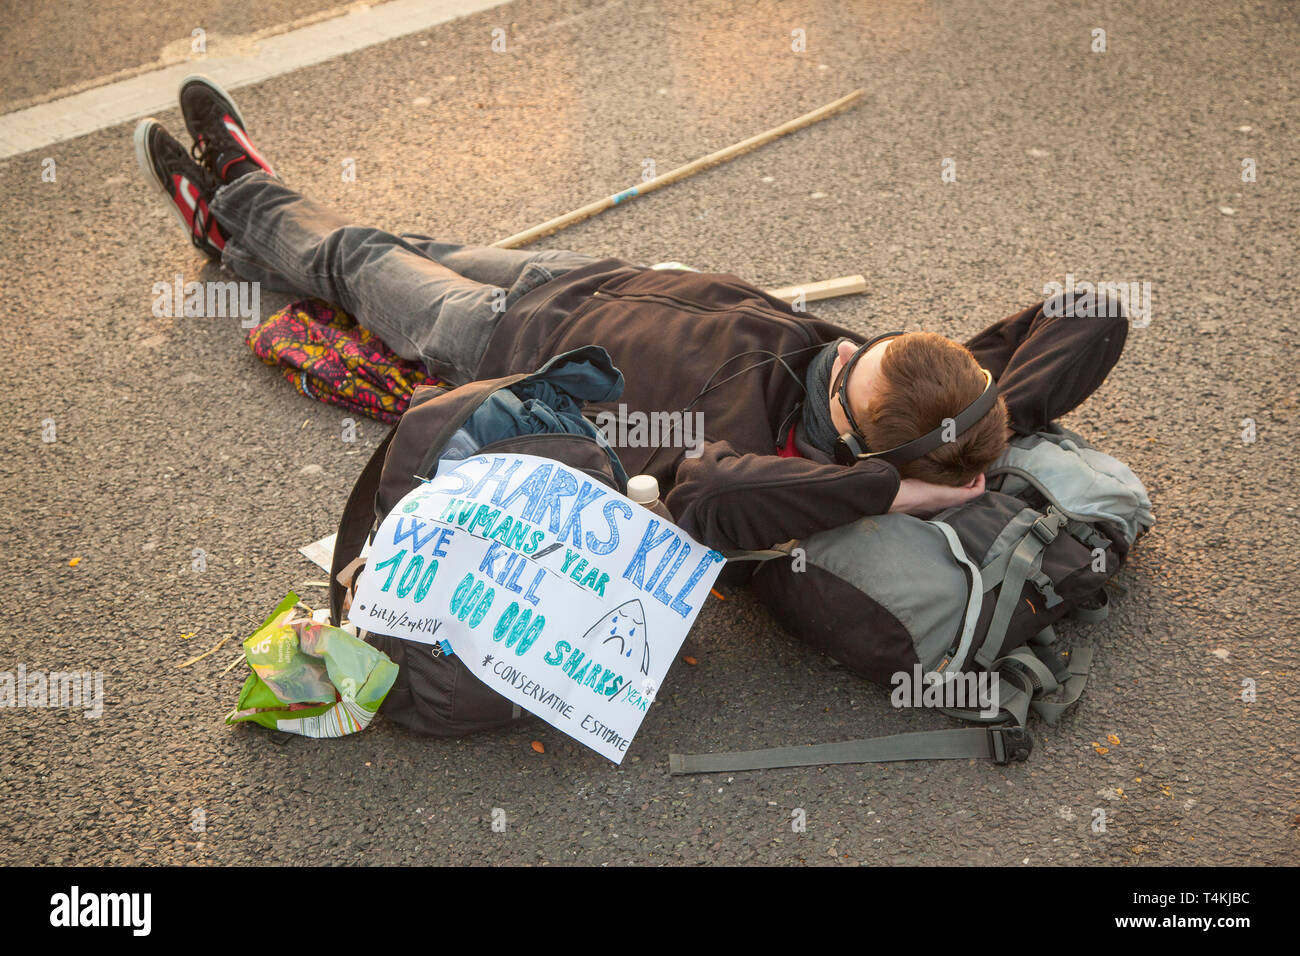 A protester lies on the road on Waterloo Bridge for the Extinction Rebellion demonstration with a placard - Stock Image